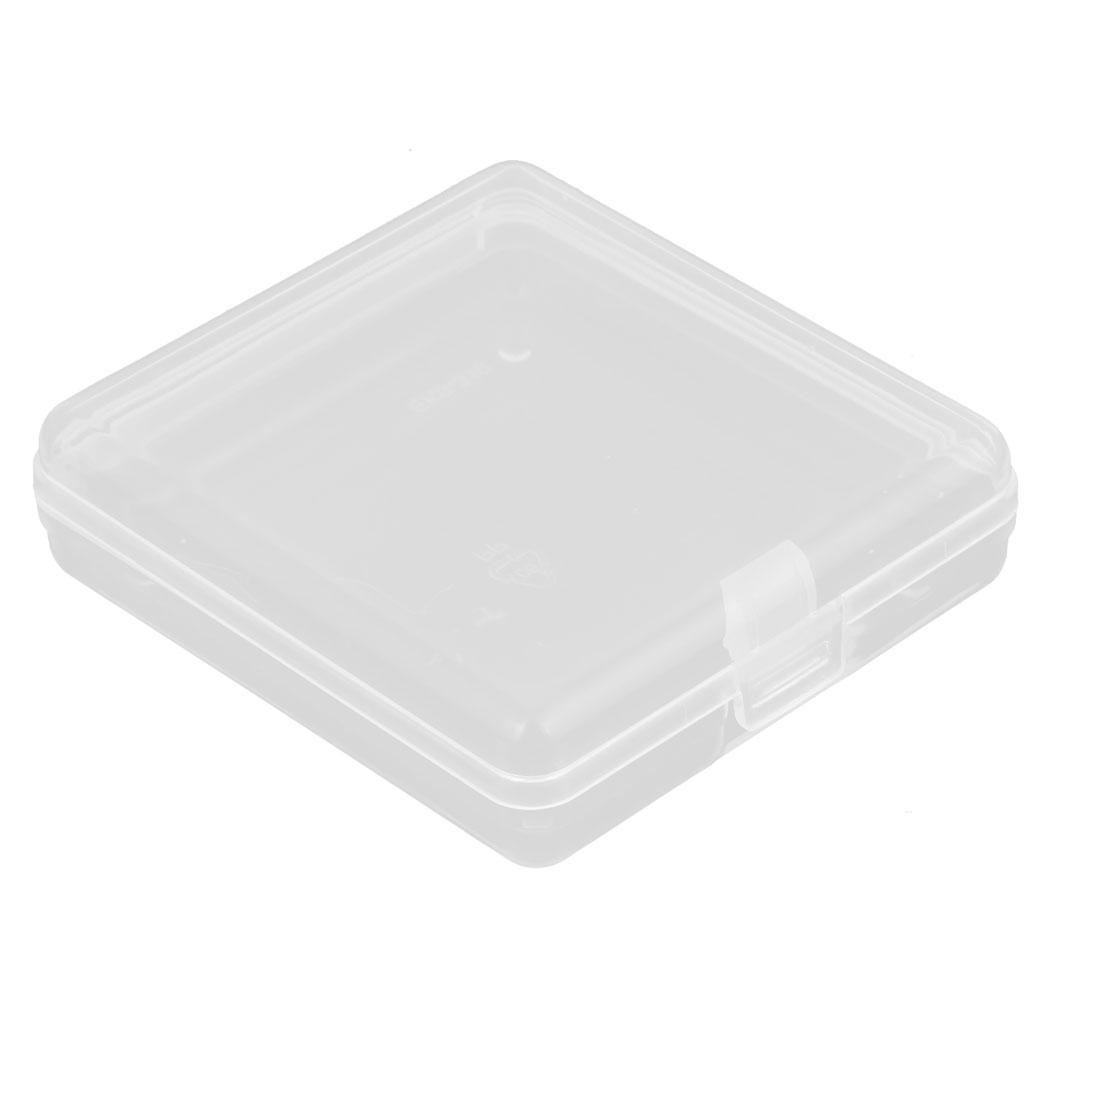 6cm x 5.5cm White Plastic Components Storage Enclosure Case Box